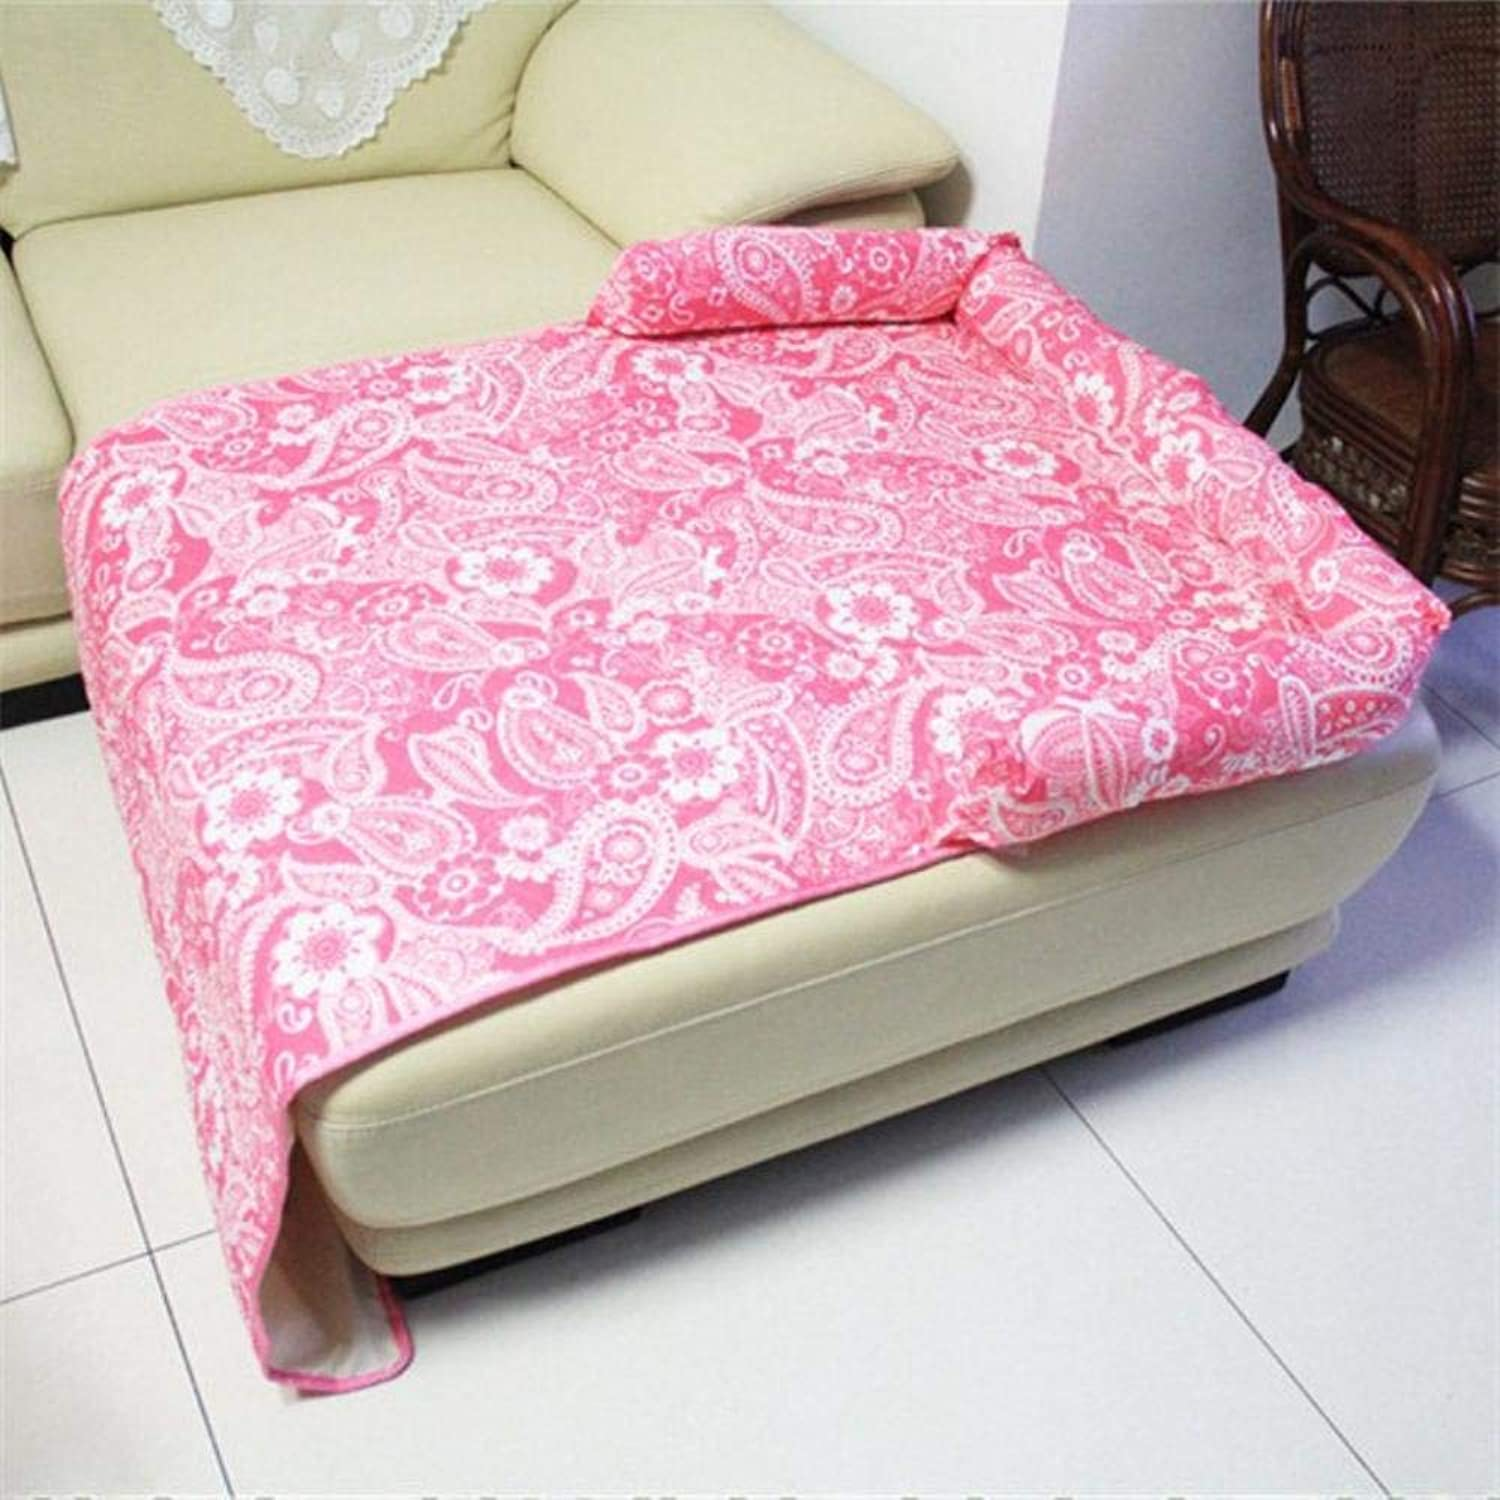 Fashion Dog Sofa Bed Printed Sofa Cover for Dogs and Cats PP Cotton Pet Sofa Predector Dog Bed Cushion Washable Dog Mat (XL,Pinky with White)